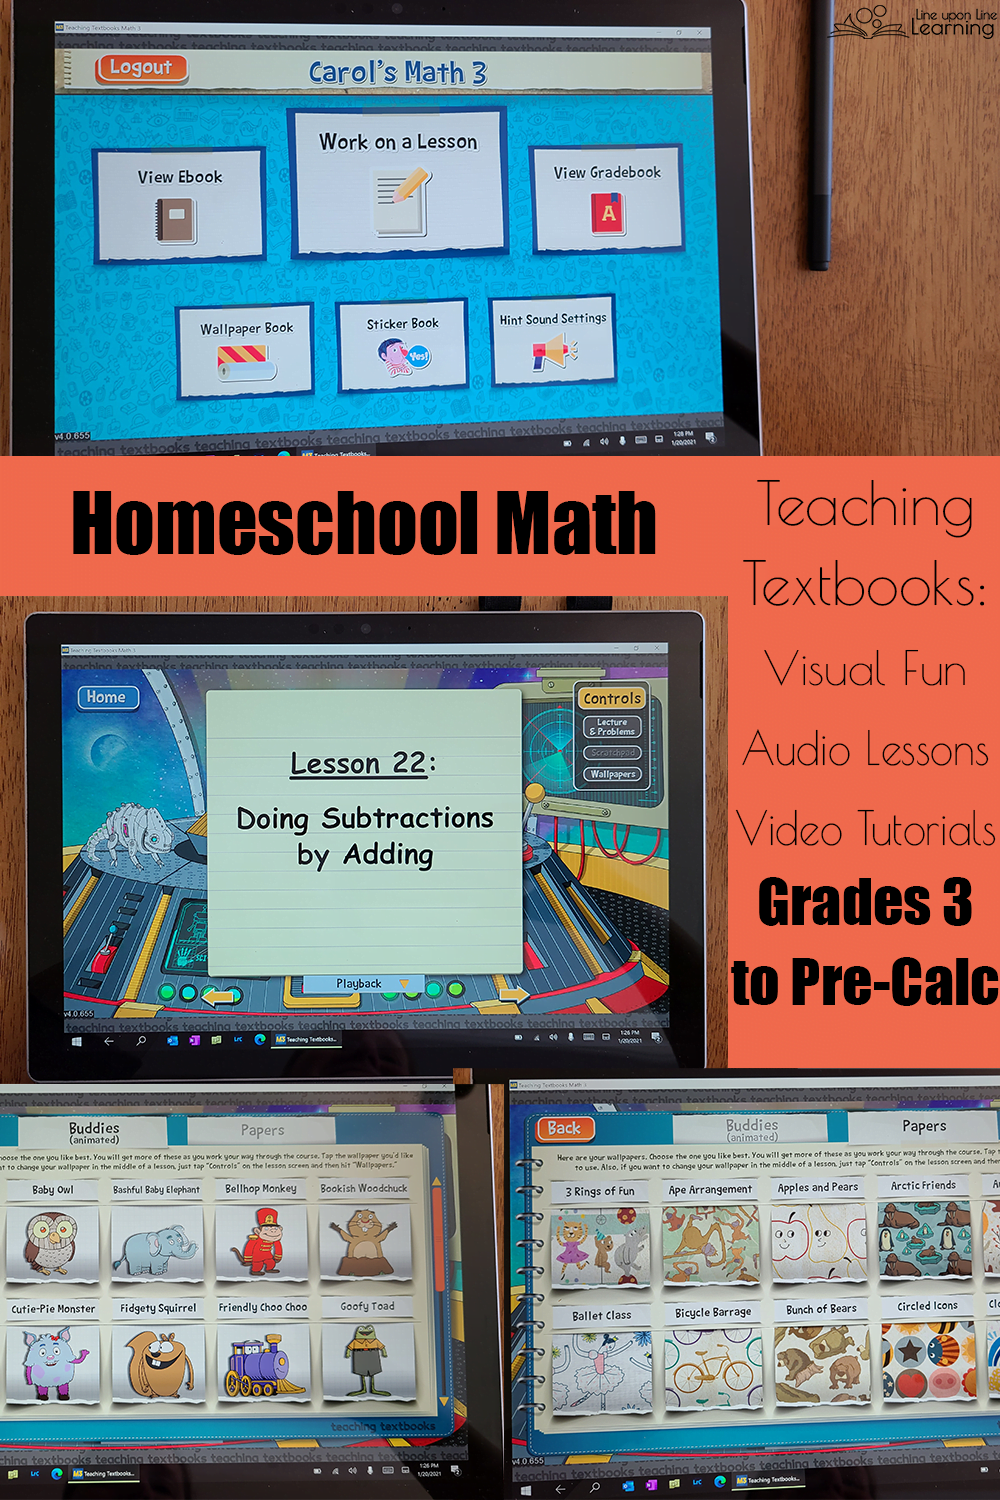 Teaching Textbooks homeschool math is visually engaging as well as full of audio and visual helps  for the struggling learner.